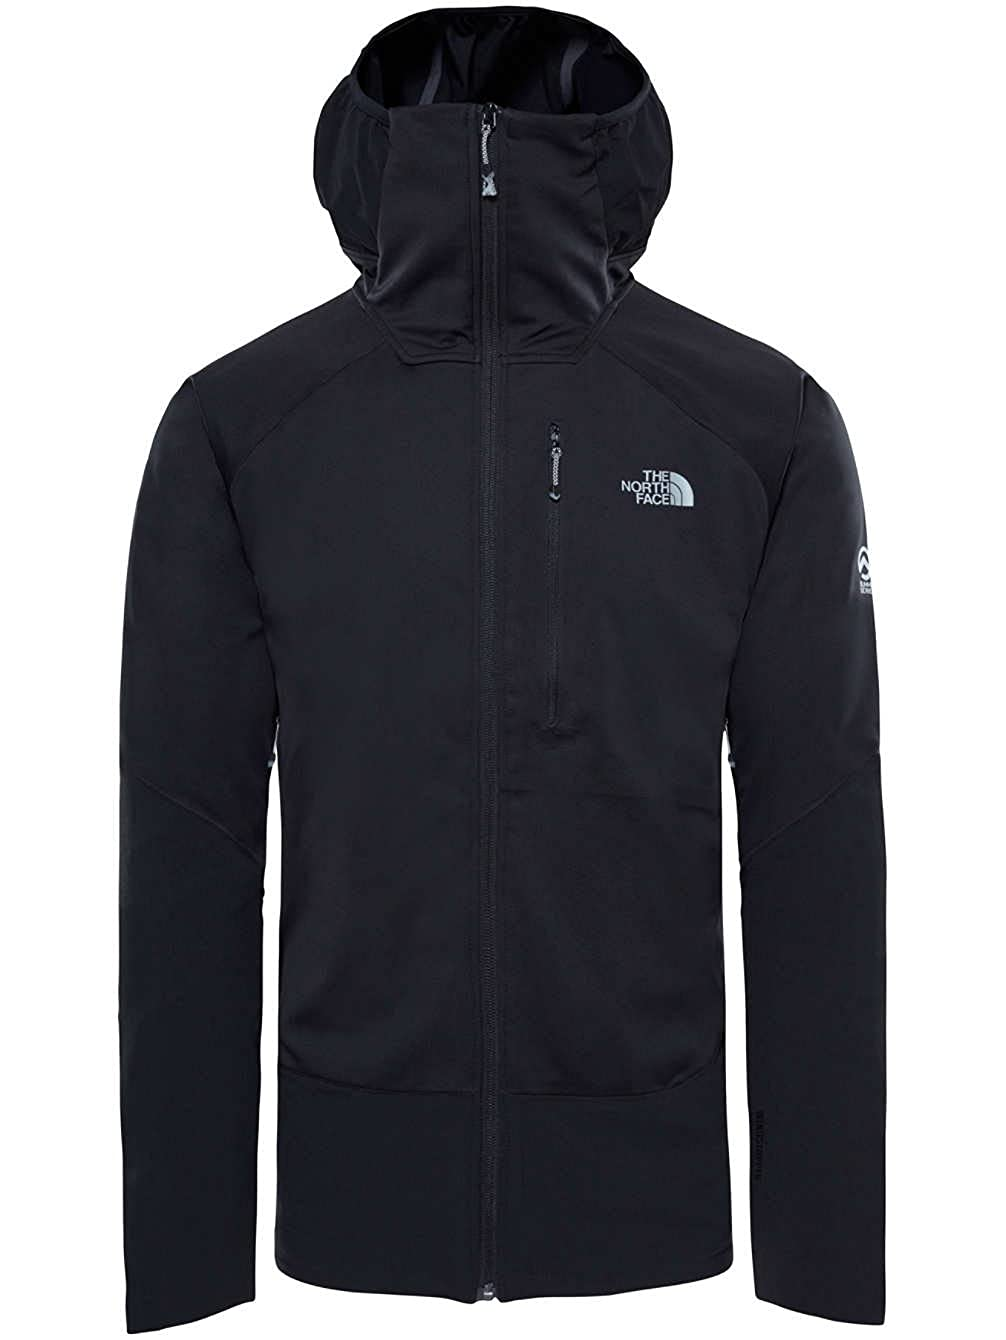 4b11b8a48 The North Face Men's Summit L4 Windstopper Hoodie: Amazon.co.uk ...